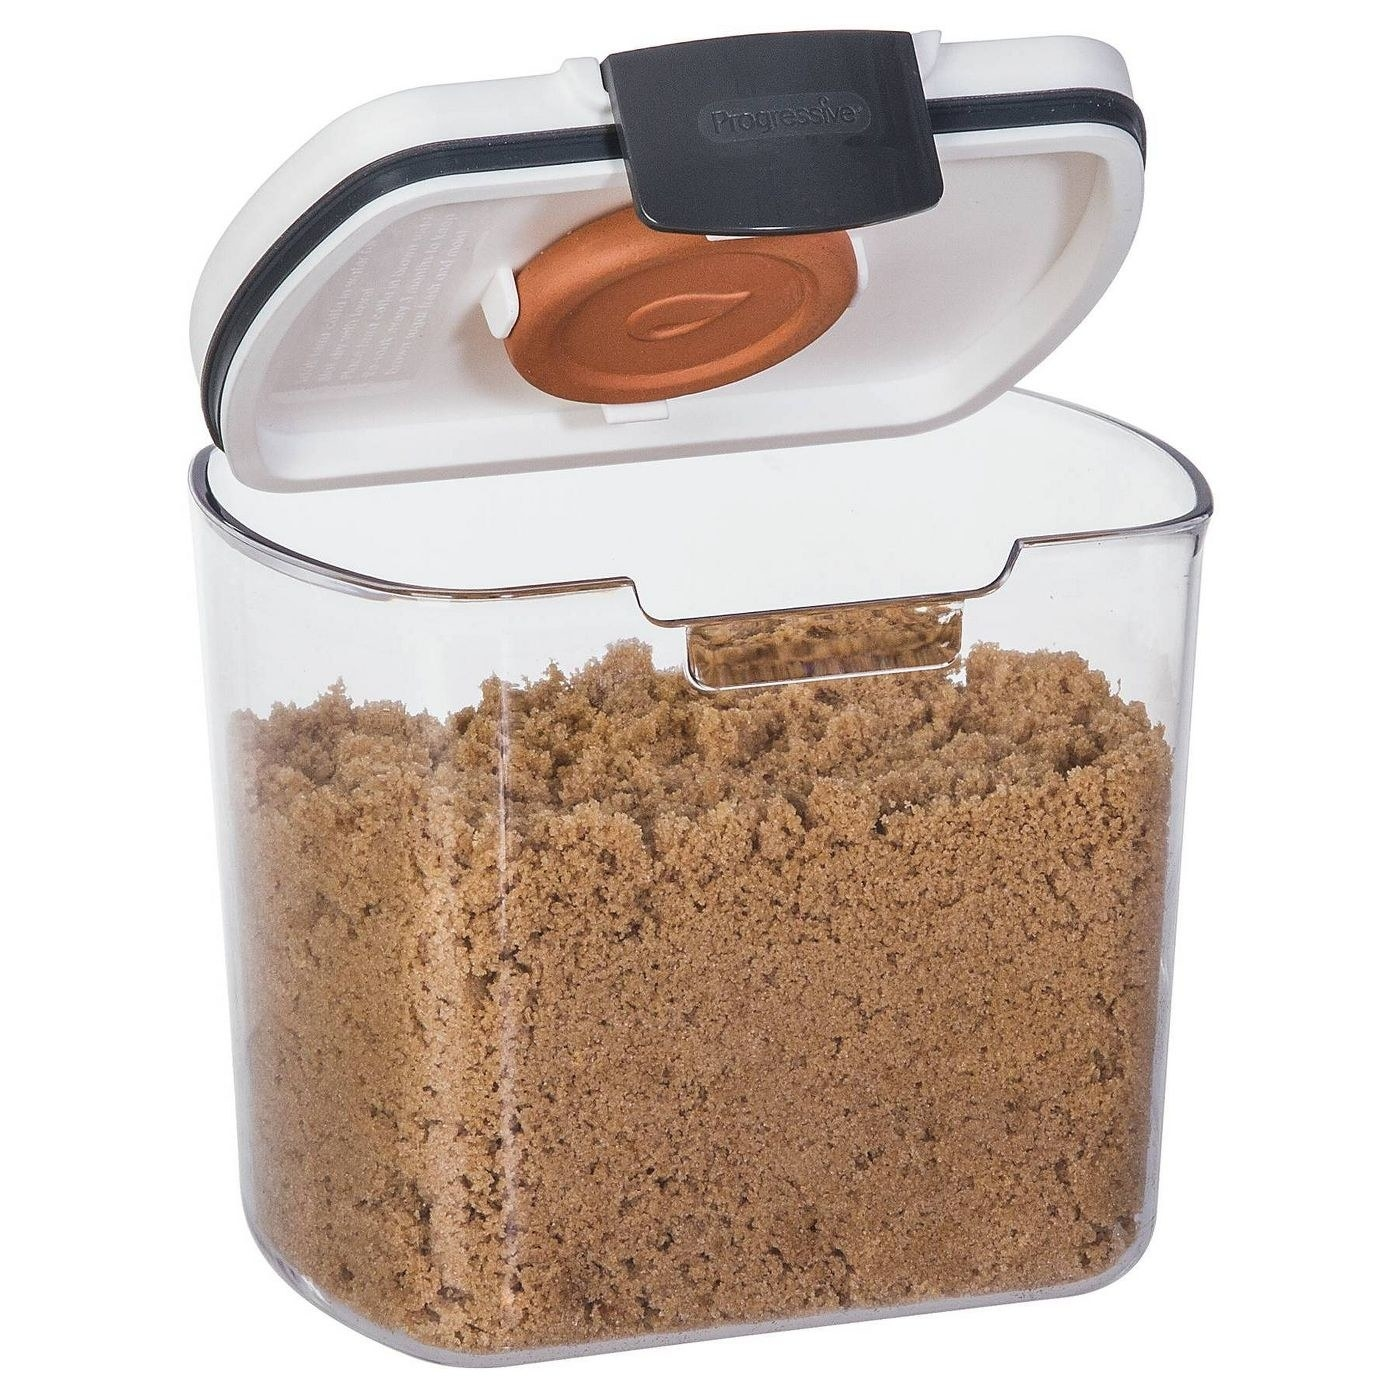 The brown sugar container